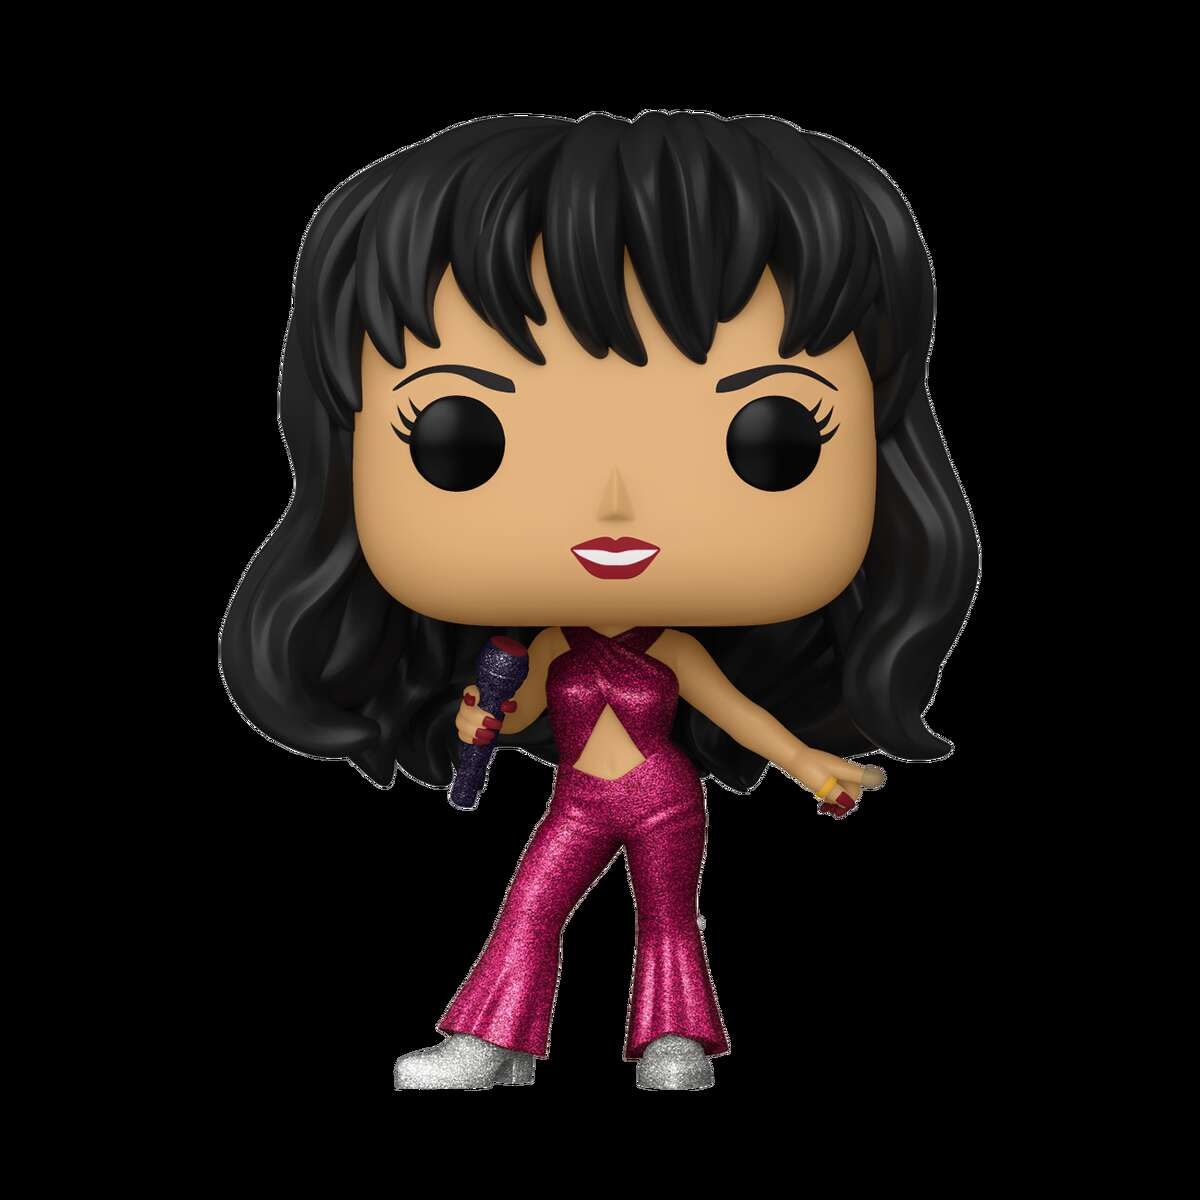 Funko said a diamond collection with Selena in a sparkling burgundy outfit will be sold exclusively next year at the retail chain Hot Topic.